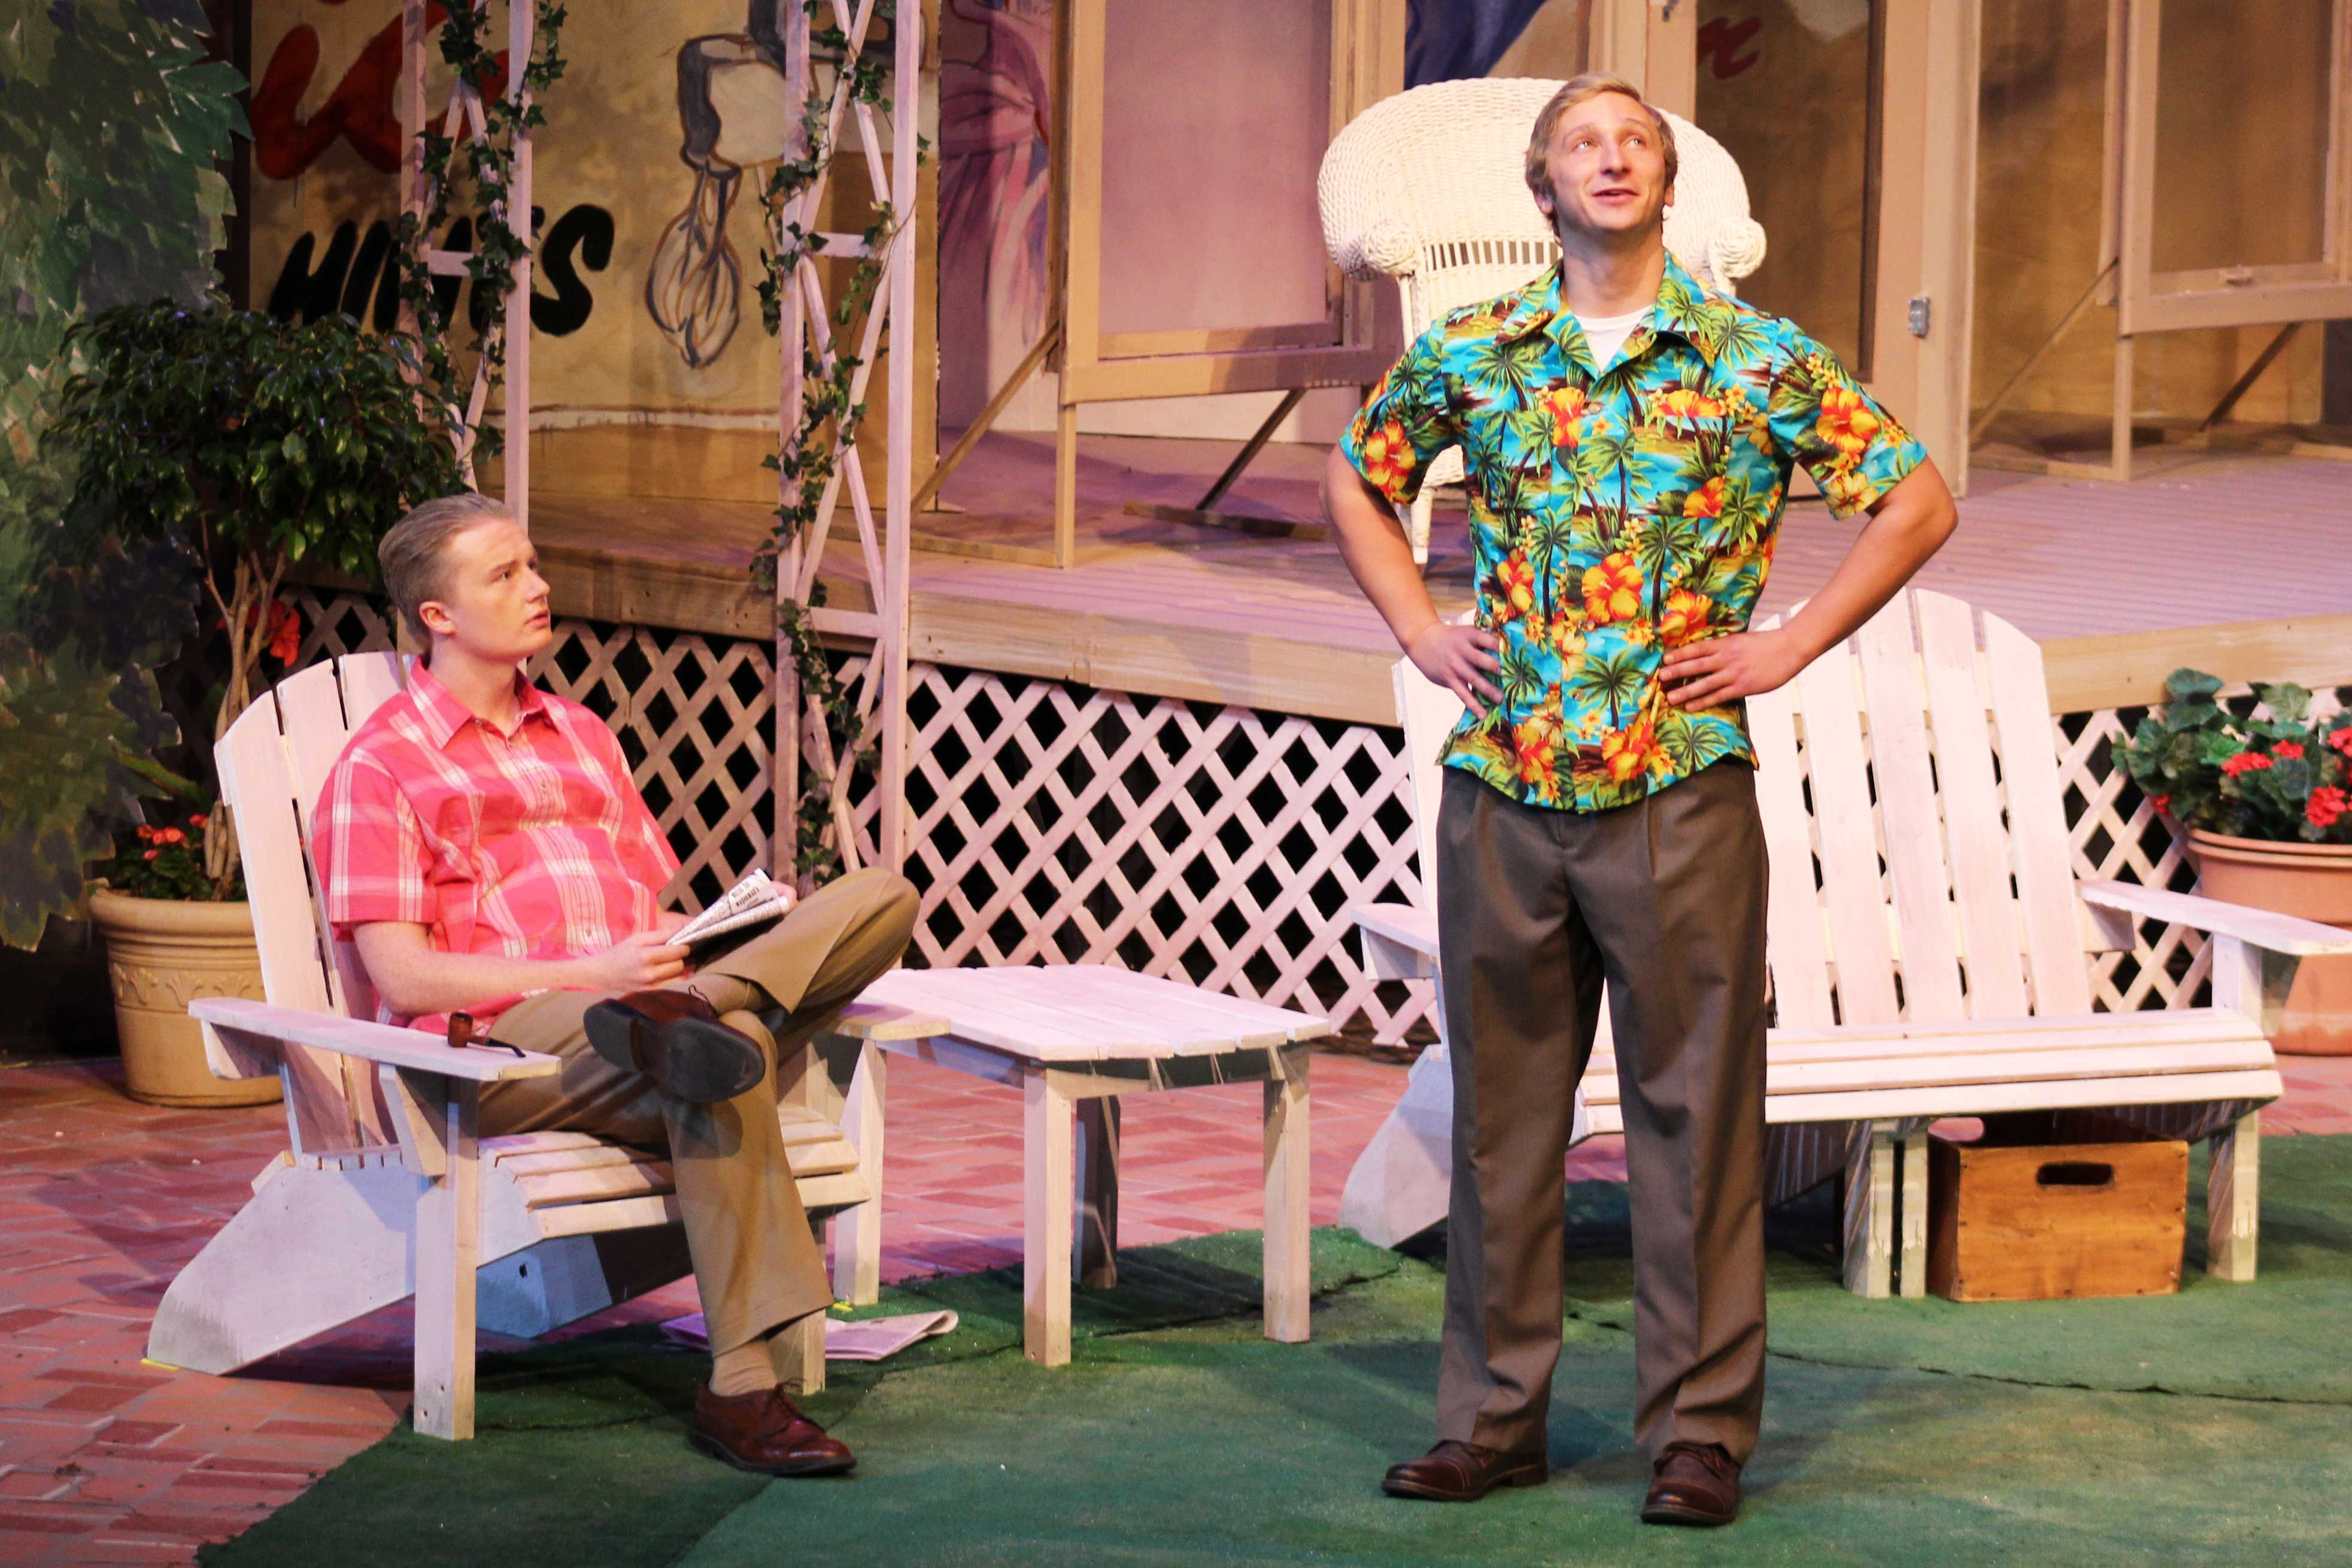 Theatre department examines family dynamics in 'All My Sons'